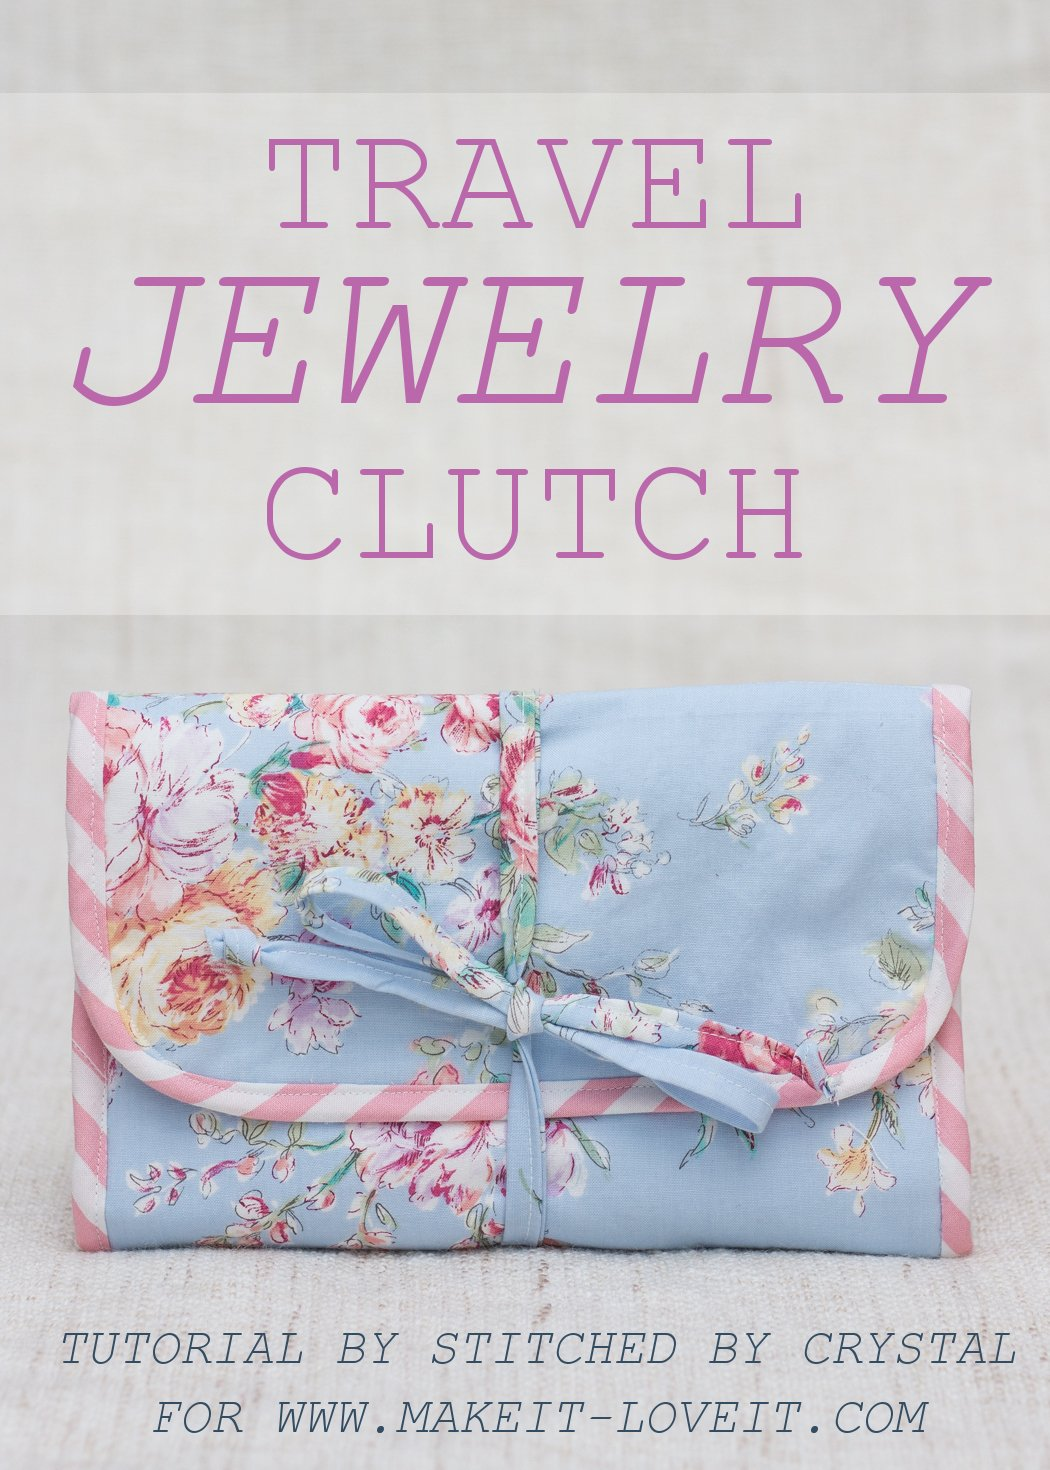 Travel jewelry clutch tutorial